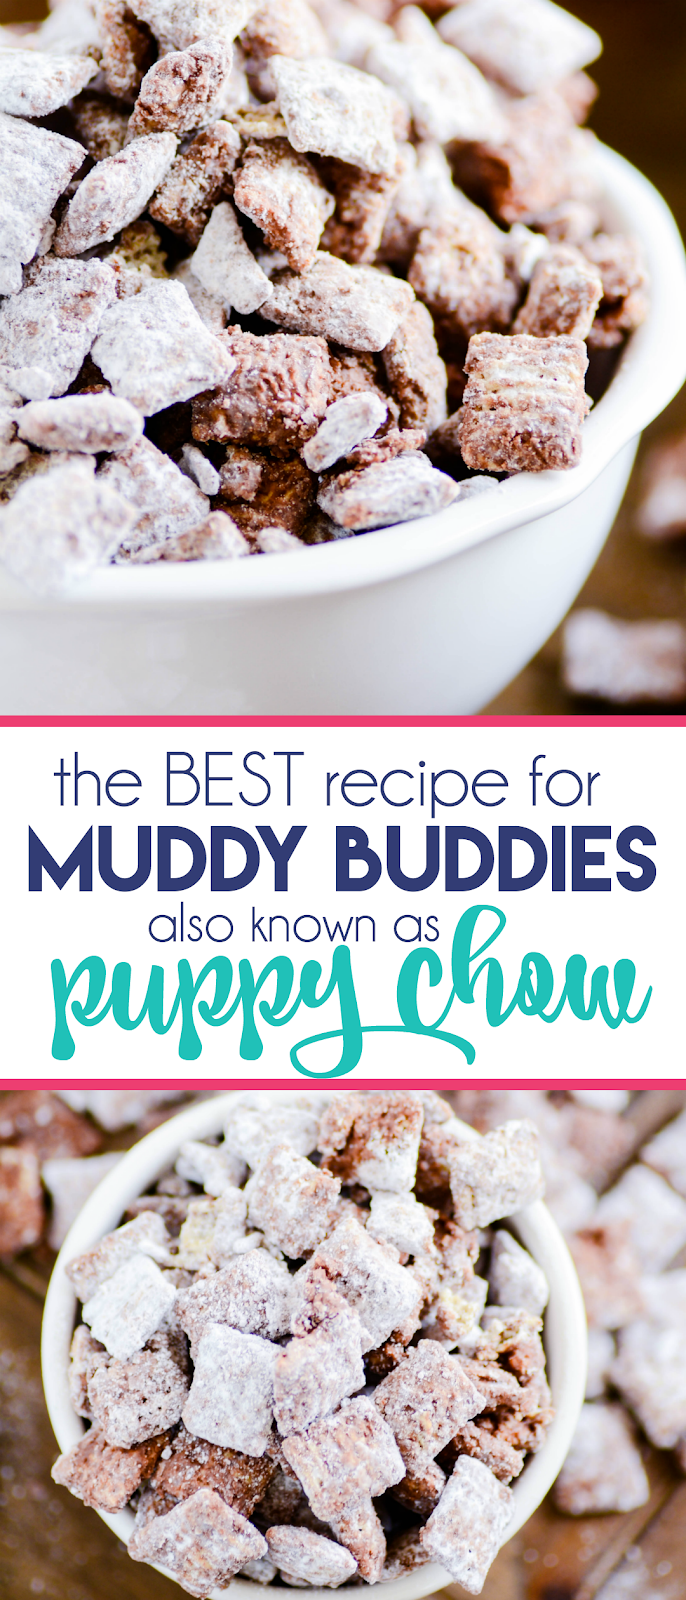 Muddy Buddies are one of my all-time favorite treats. Be sure to save this recipe, you won't want to lose it!